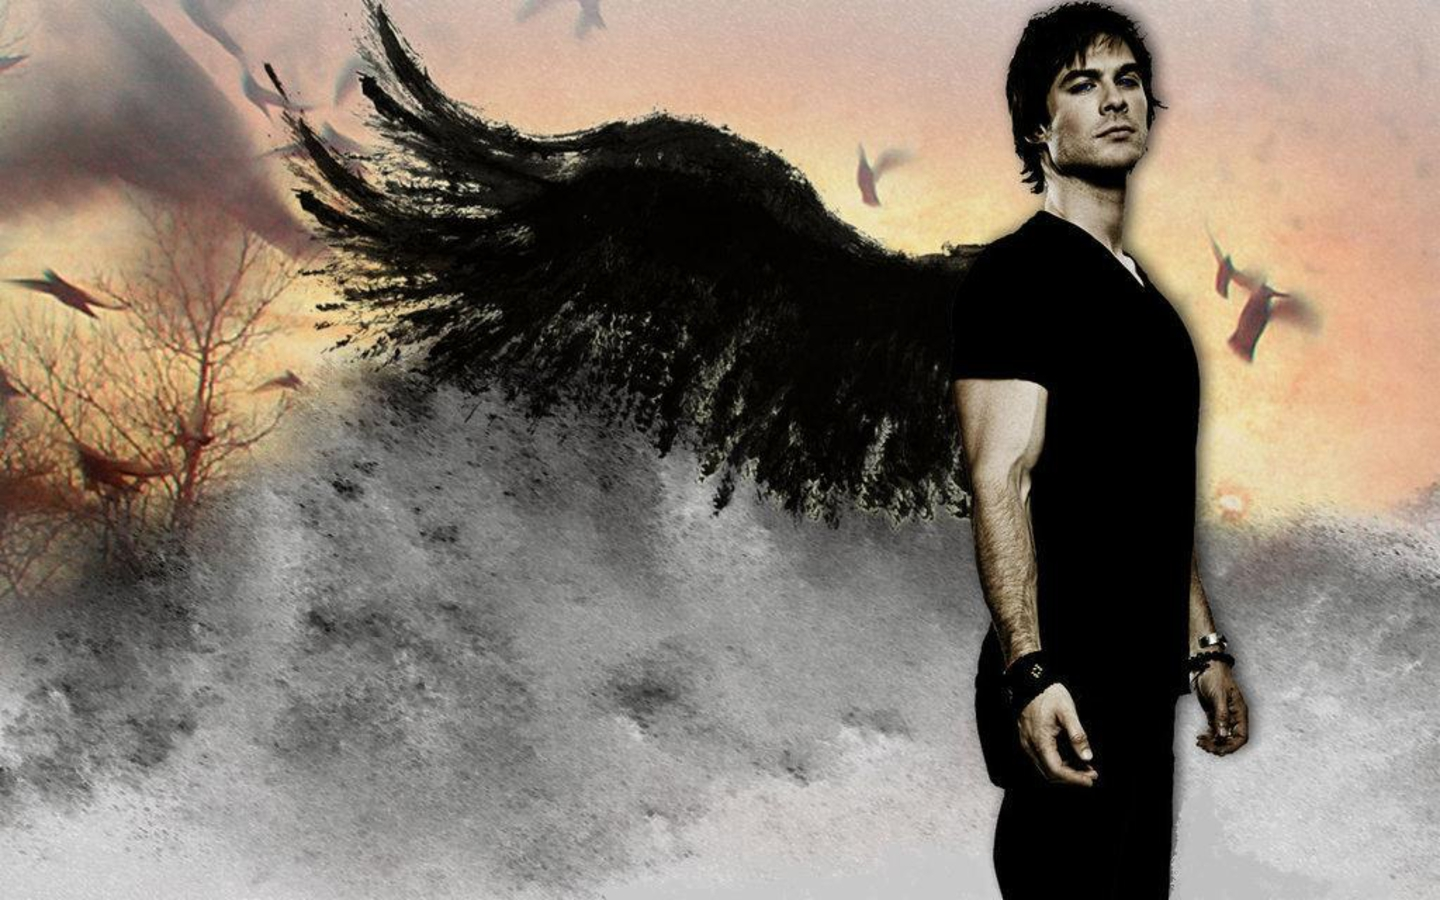 Ian Somerhalder - Love Quotes By Damon Salvatore , HD Wallpaper & Backgrounds